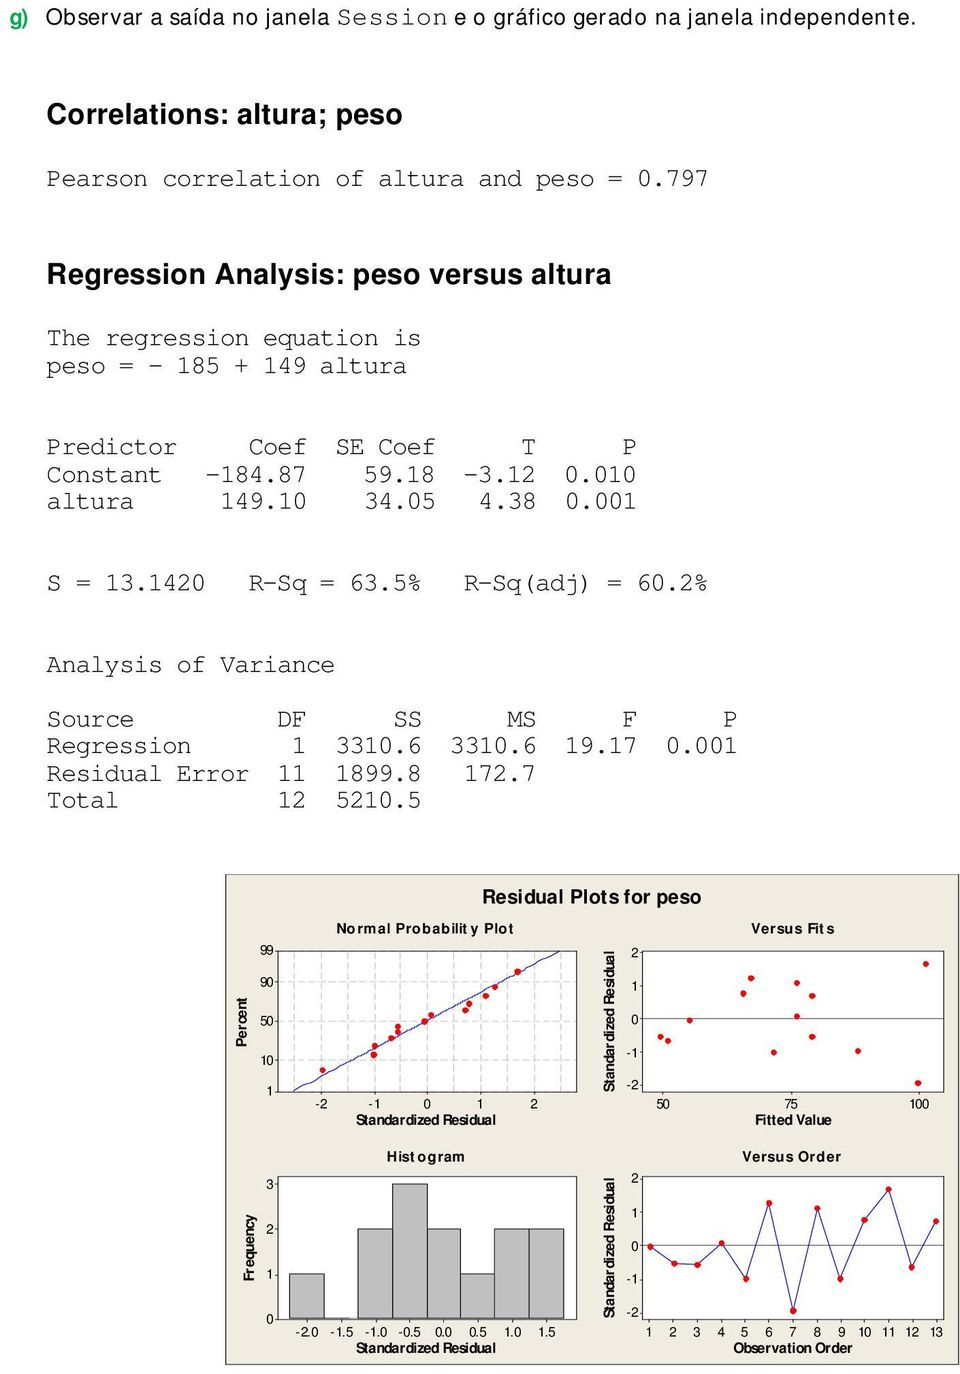 40 R-Sq = 63.5% R-Sq(adj) = 60.% Analysis of Variance Source DF SS MS F P Regression 330.6 330.6 9.7 0.00 Residual Error 899.8 7.7 Total 50.